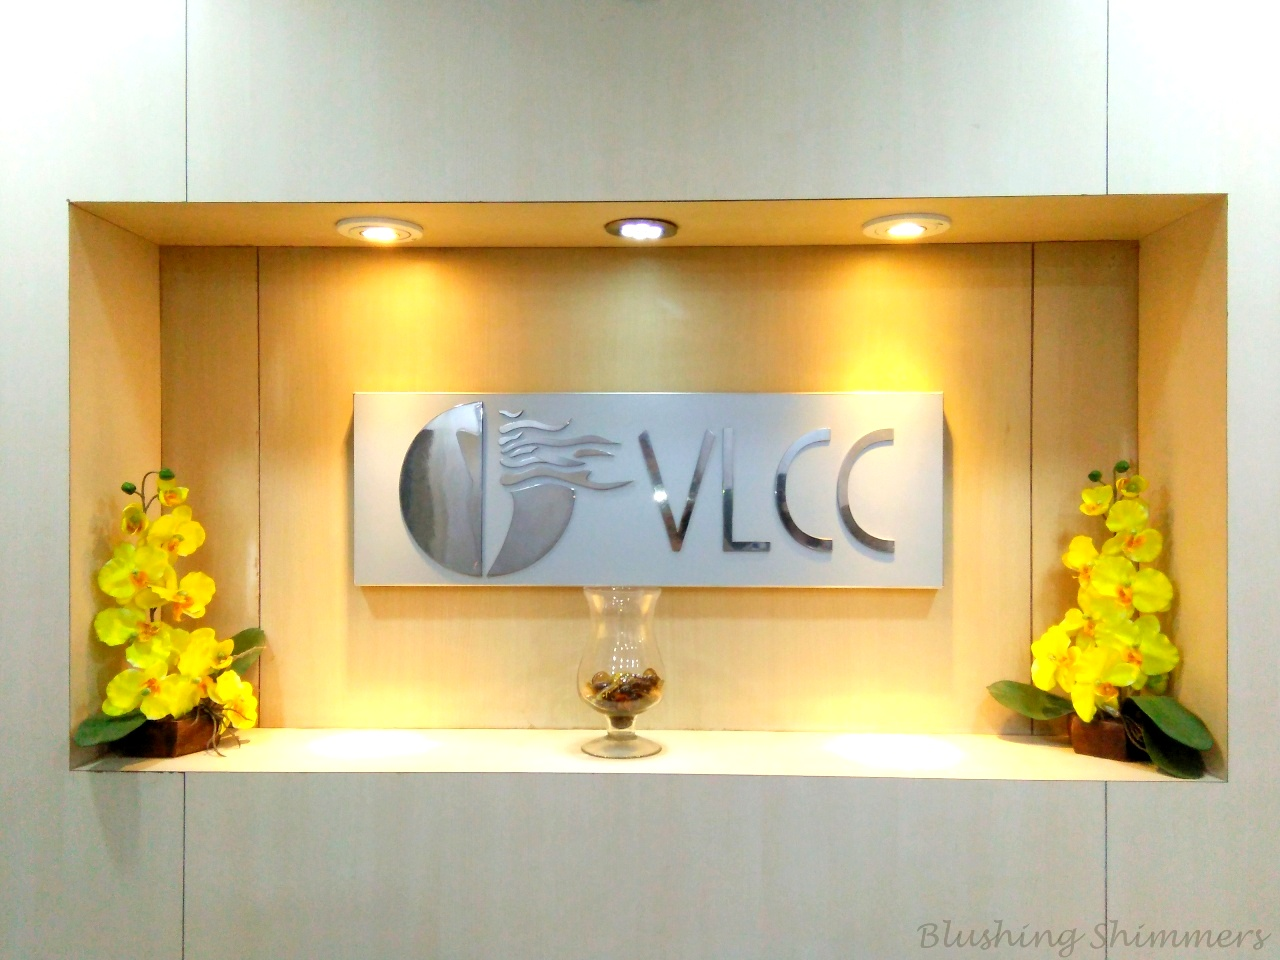 VLCC LUCKNOW REVIEW